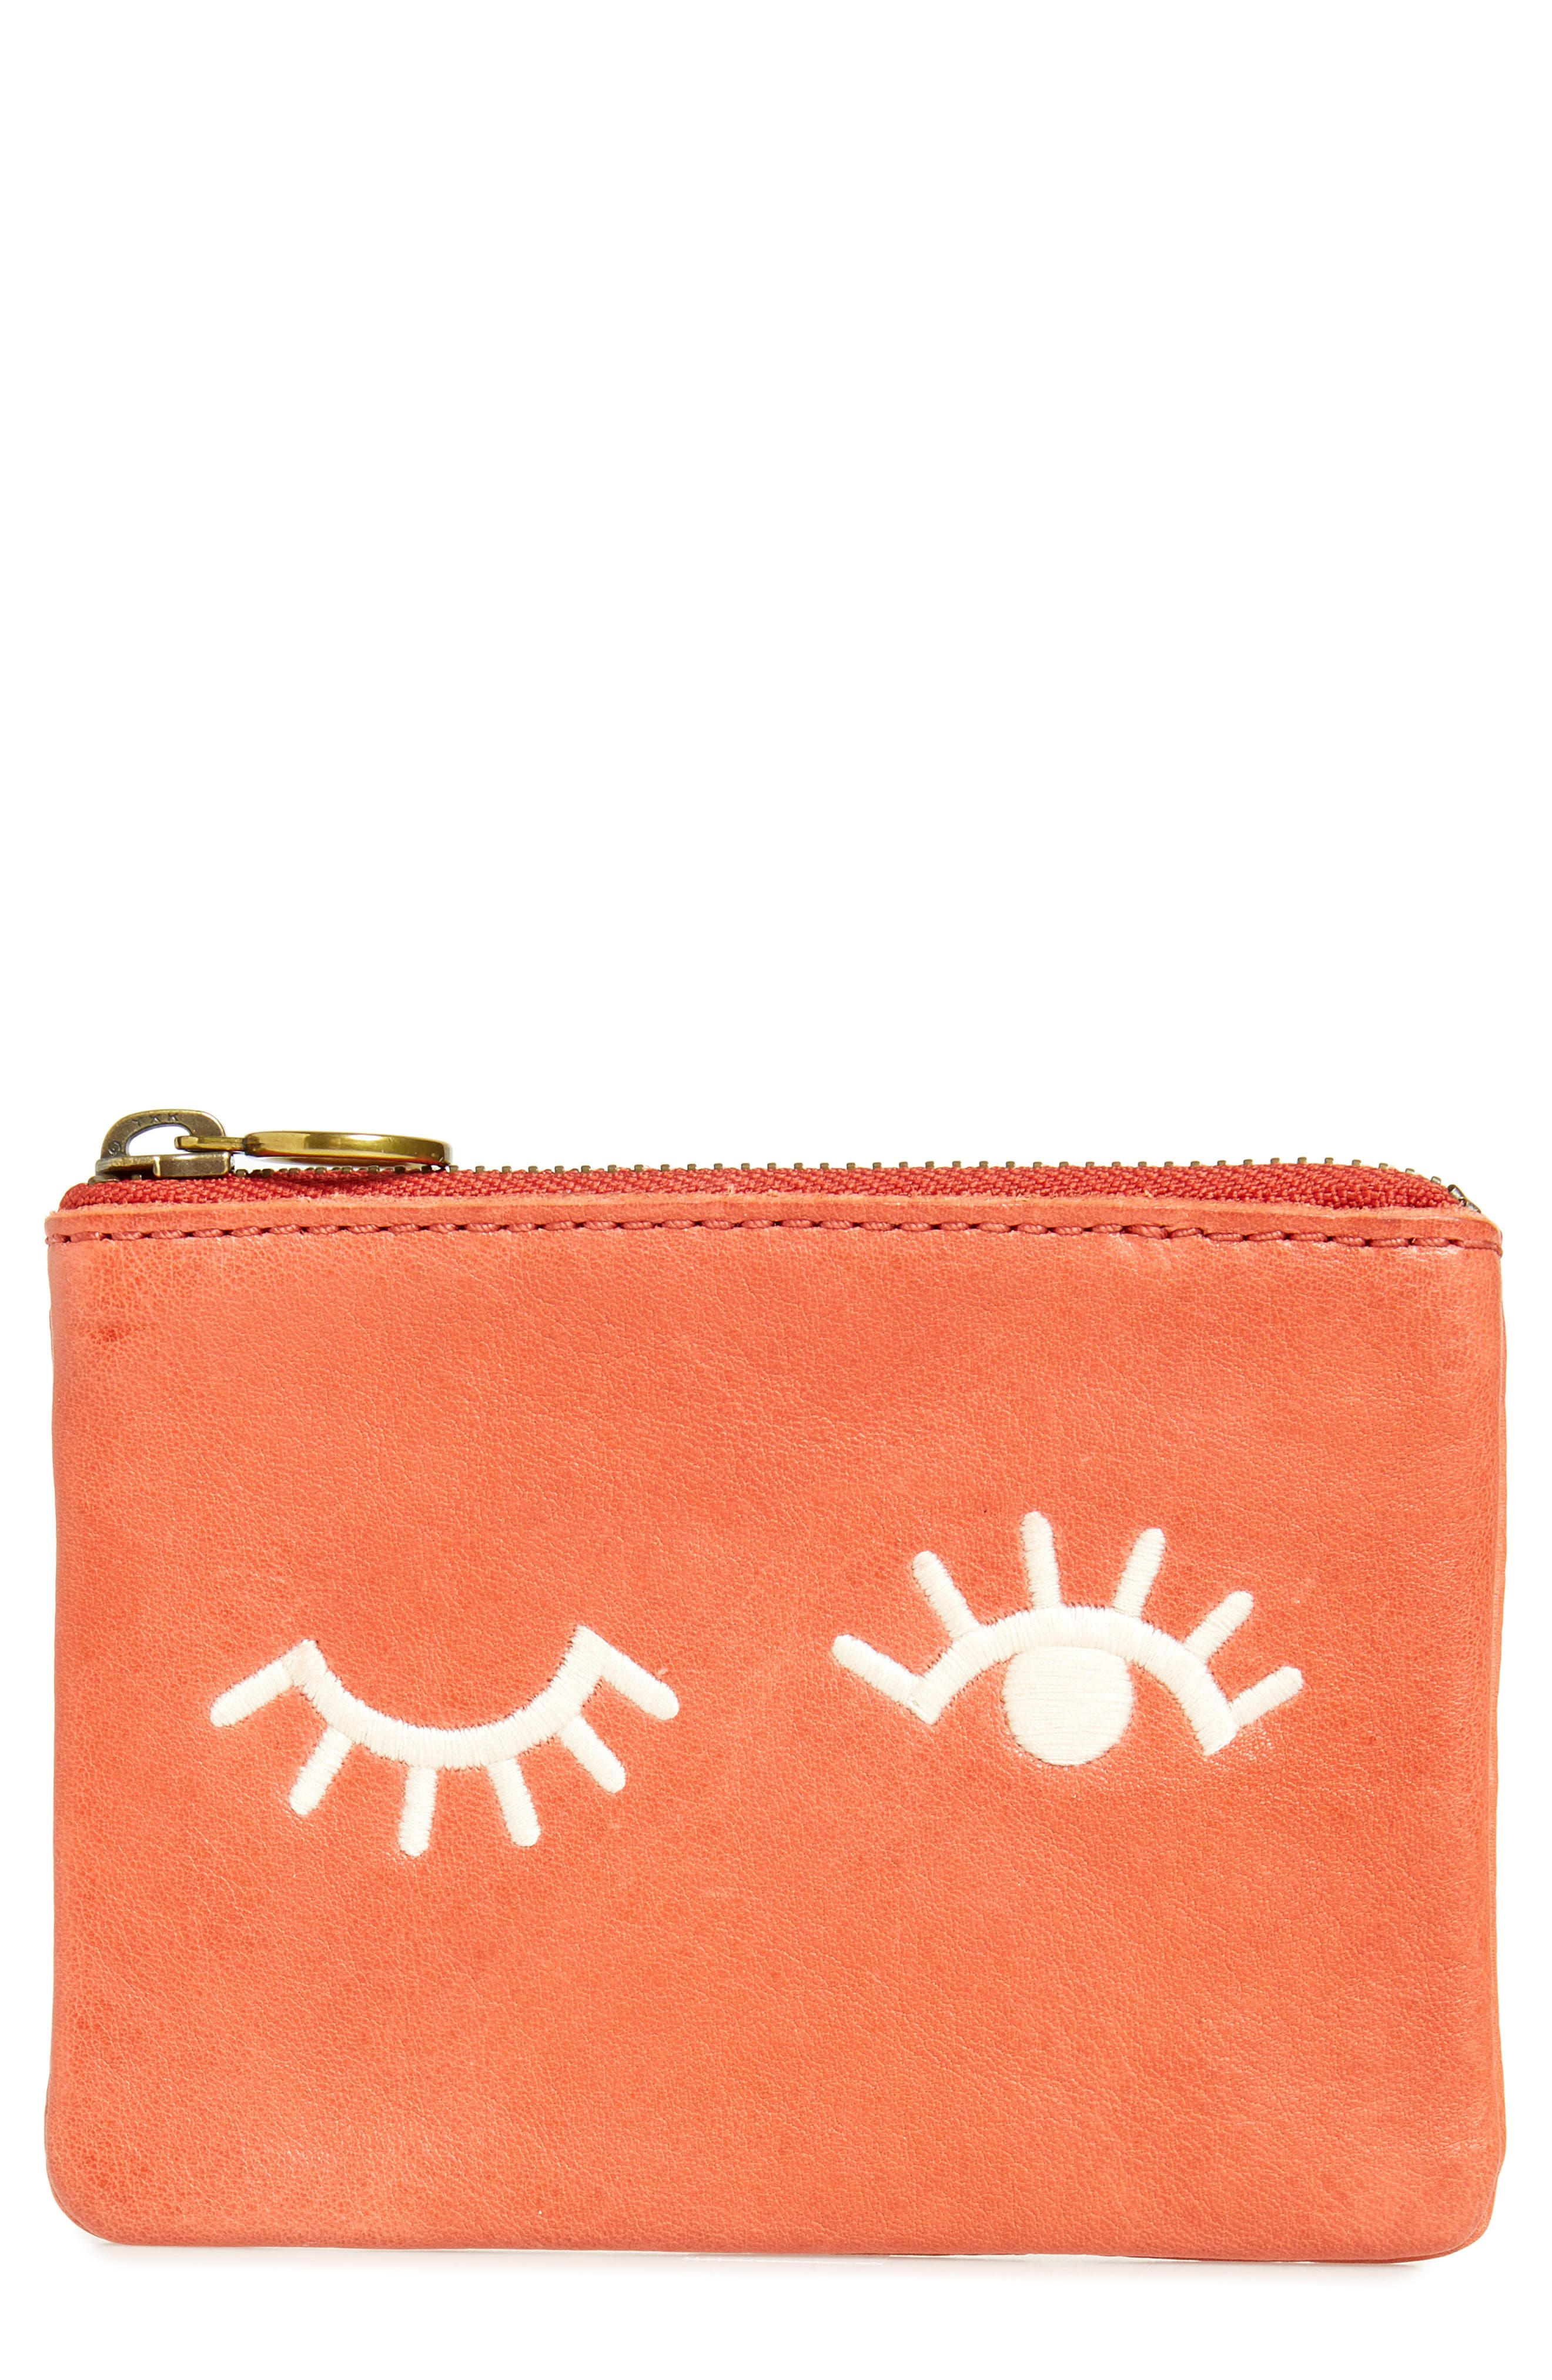 Eye Embroidered Leather Zip Pouch,                         Main,                         color, Parched Terracotta